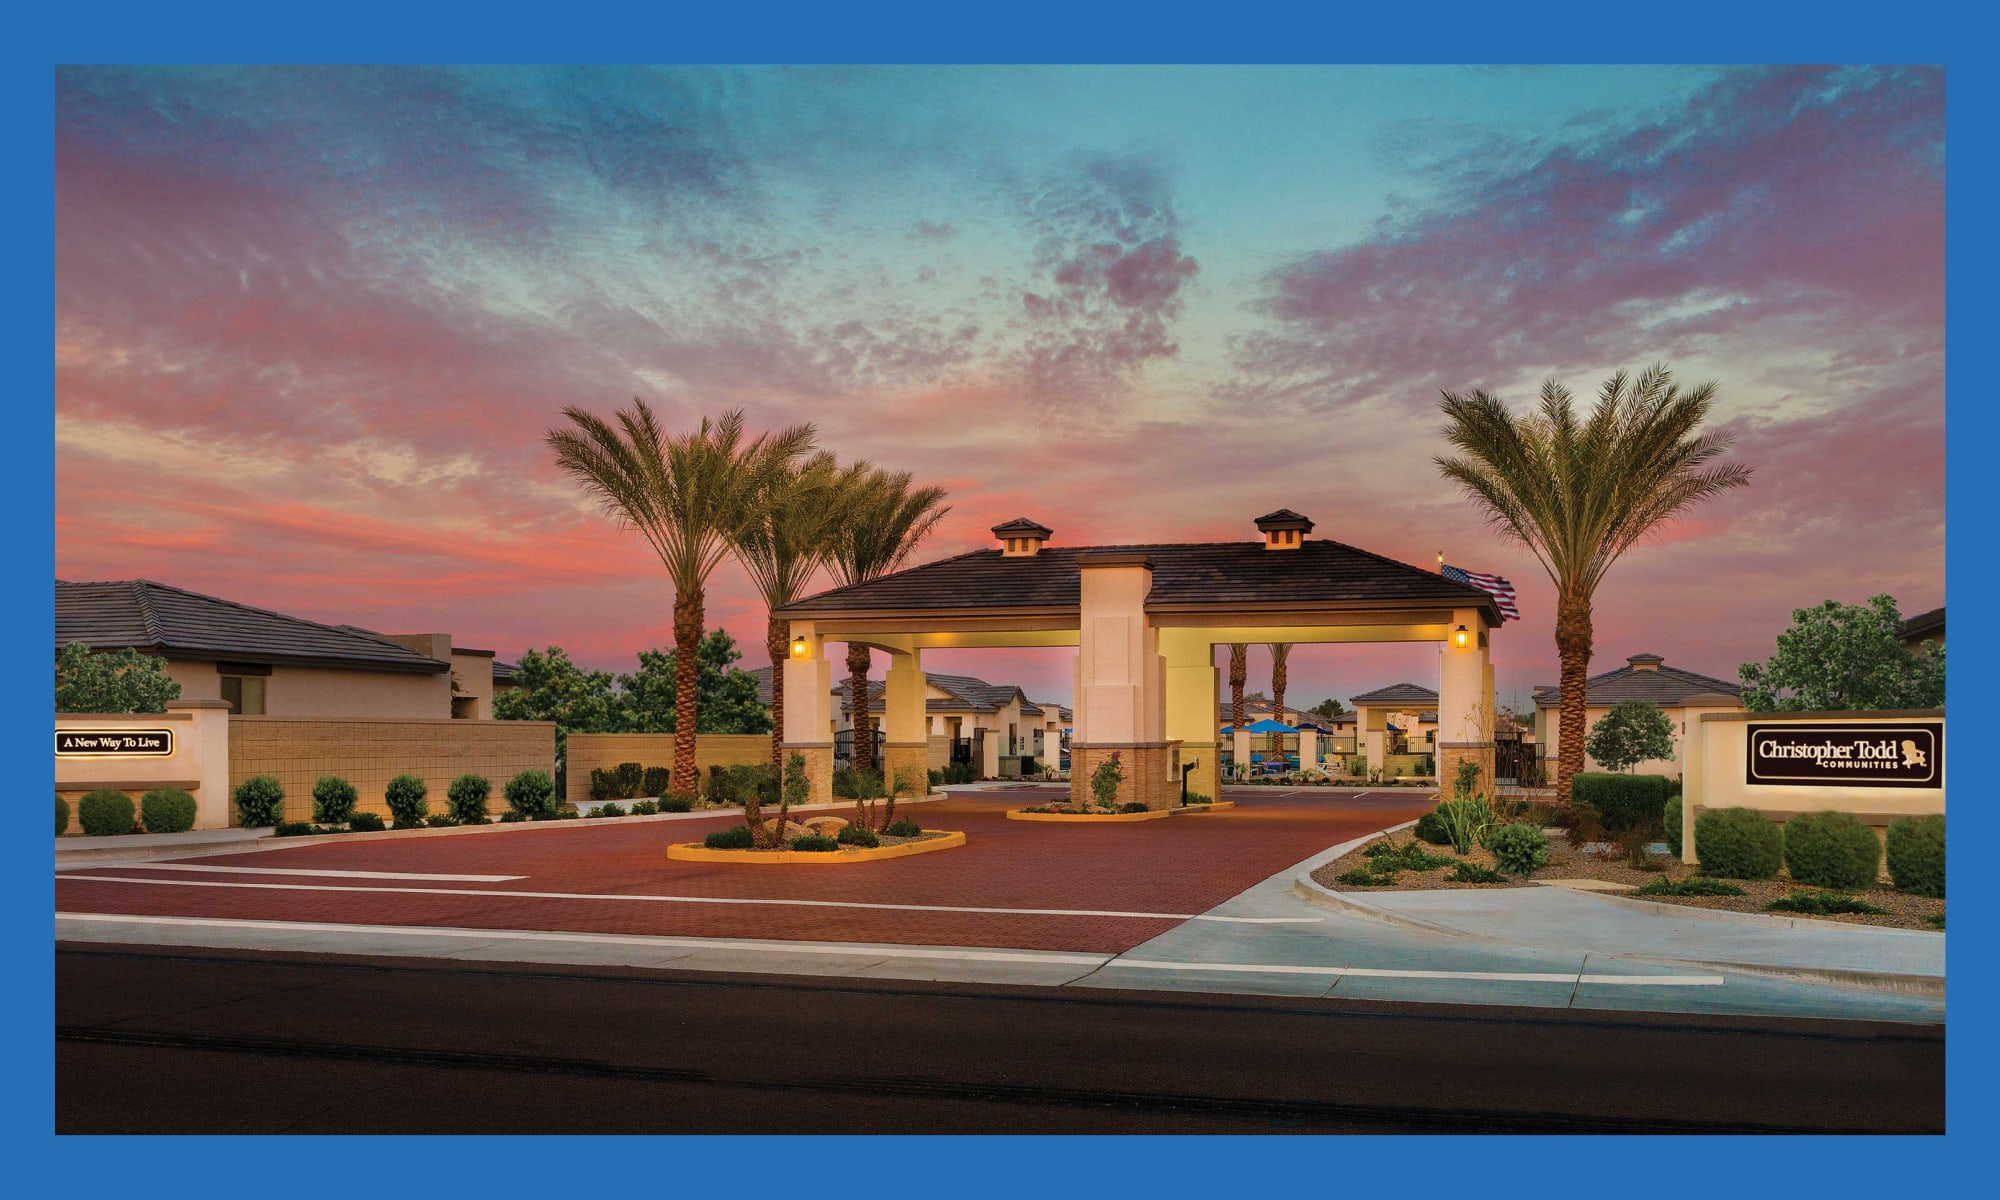 Exterior view of the leasing center at dusk at Christopher Todd Communities At Marley Park in Surprise, Arizona